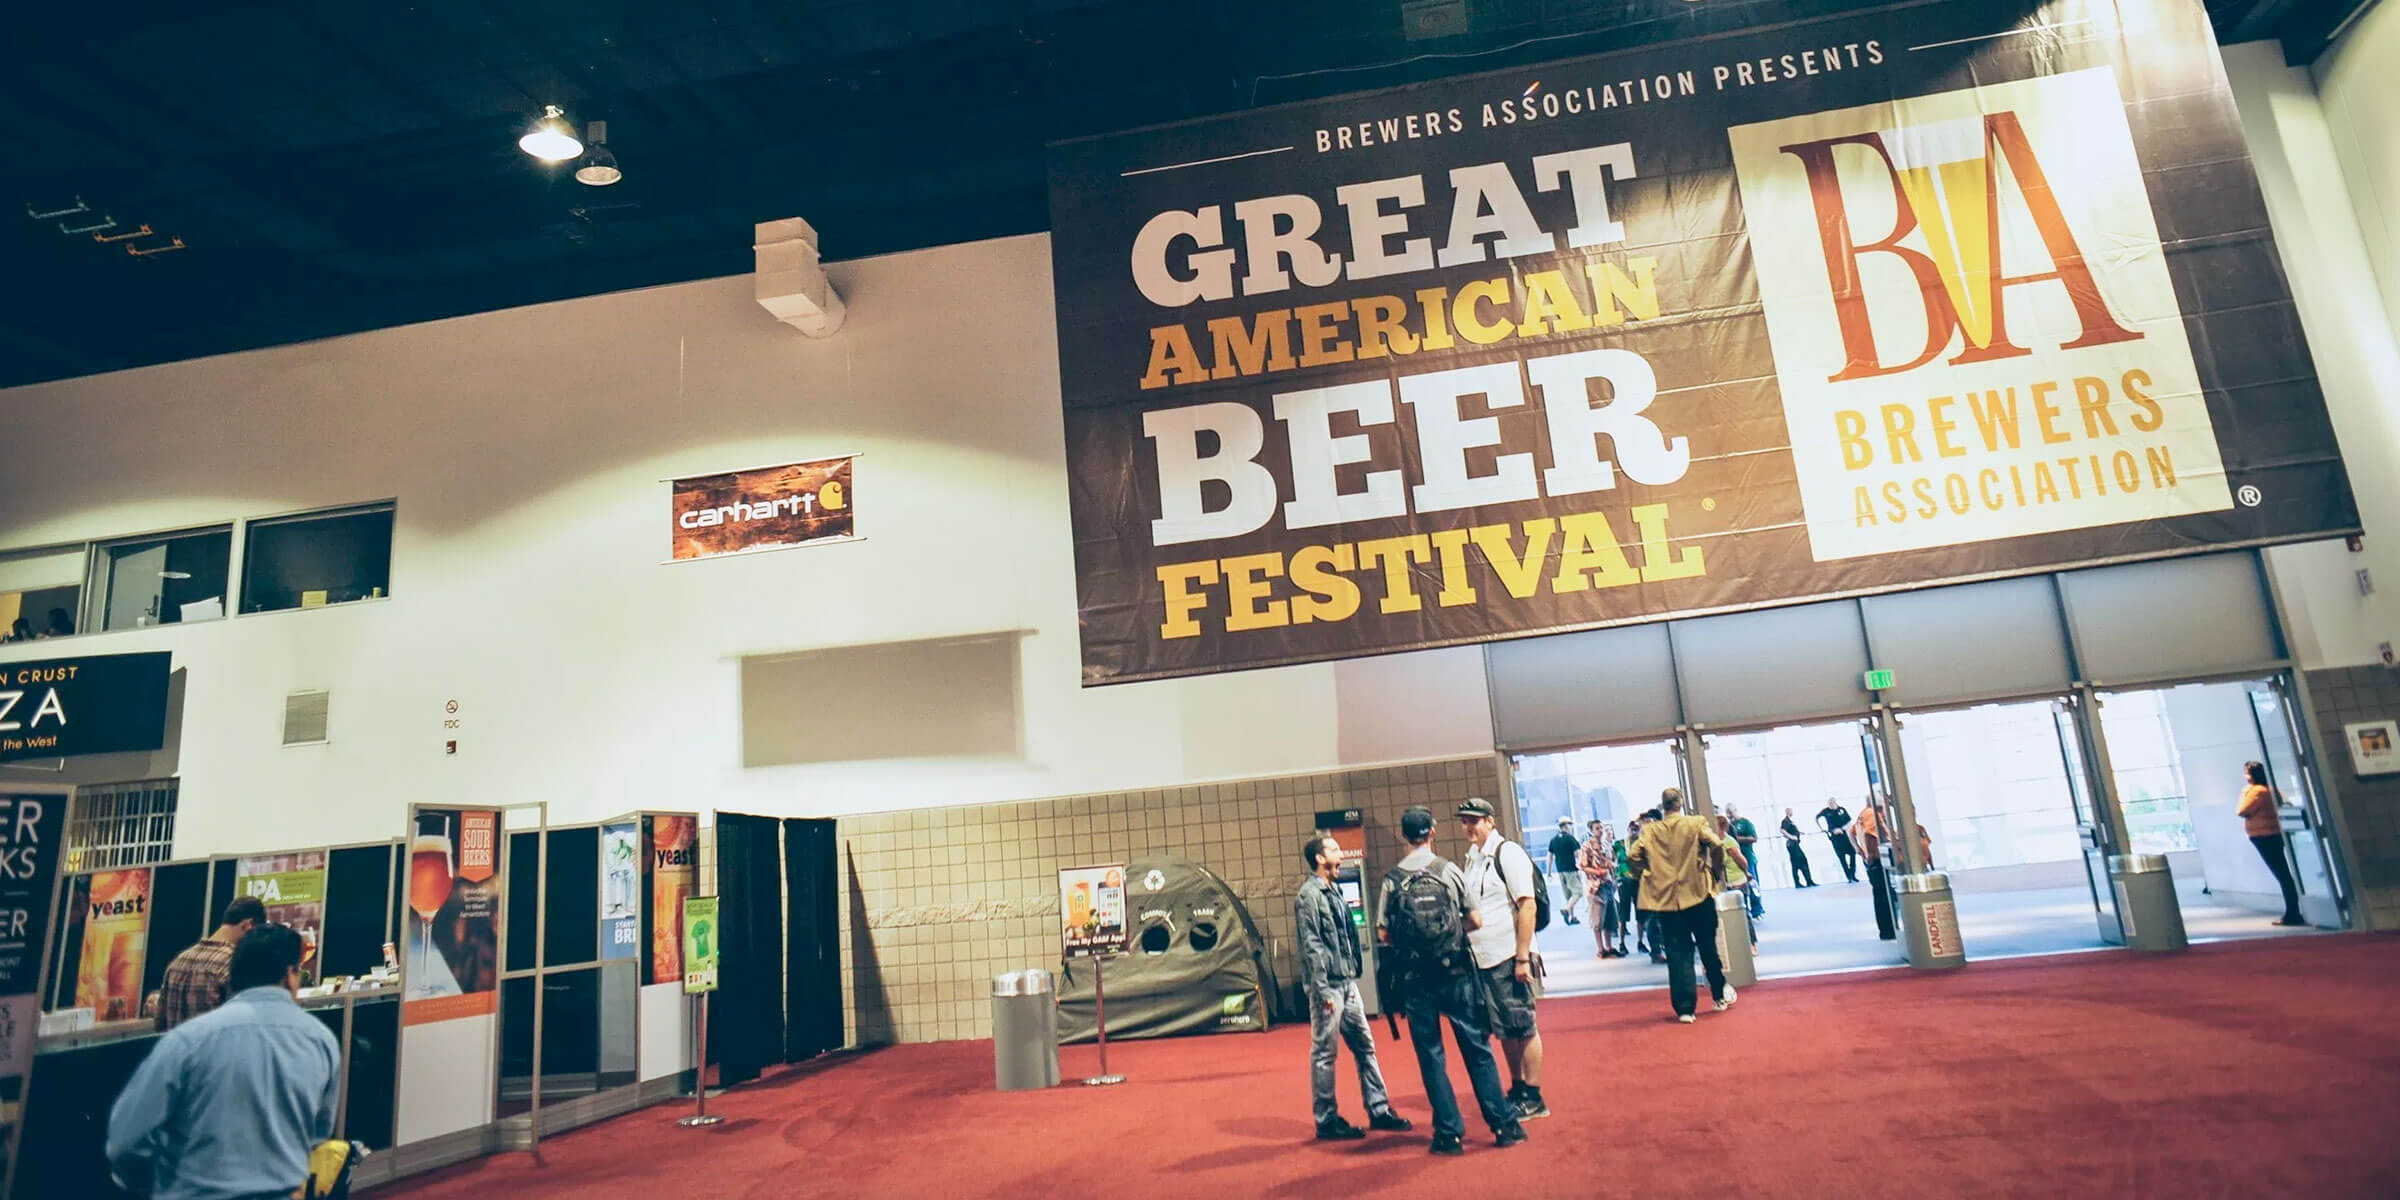 At the Entrance to the Great American Beer Festival